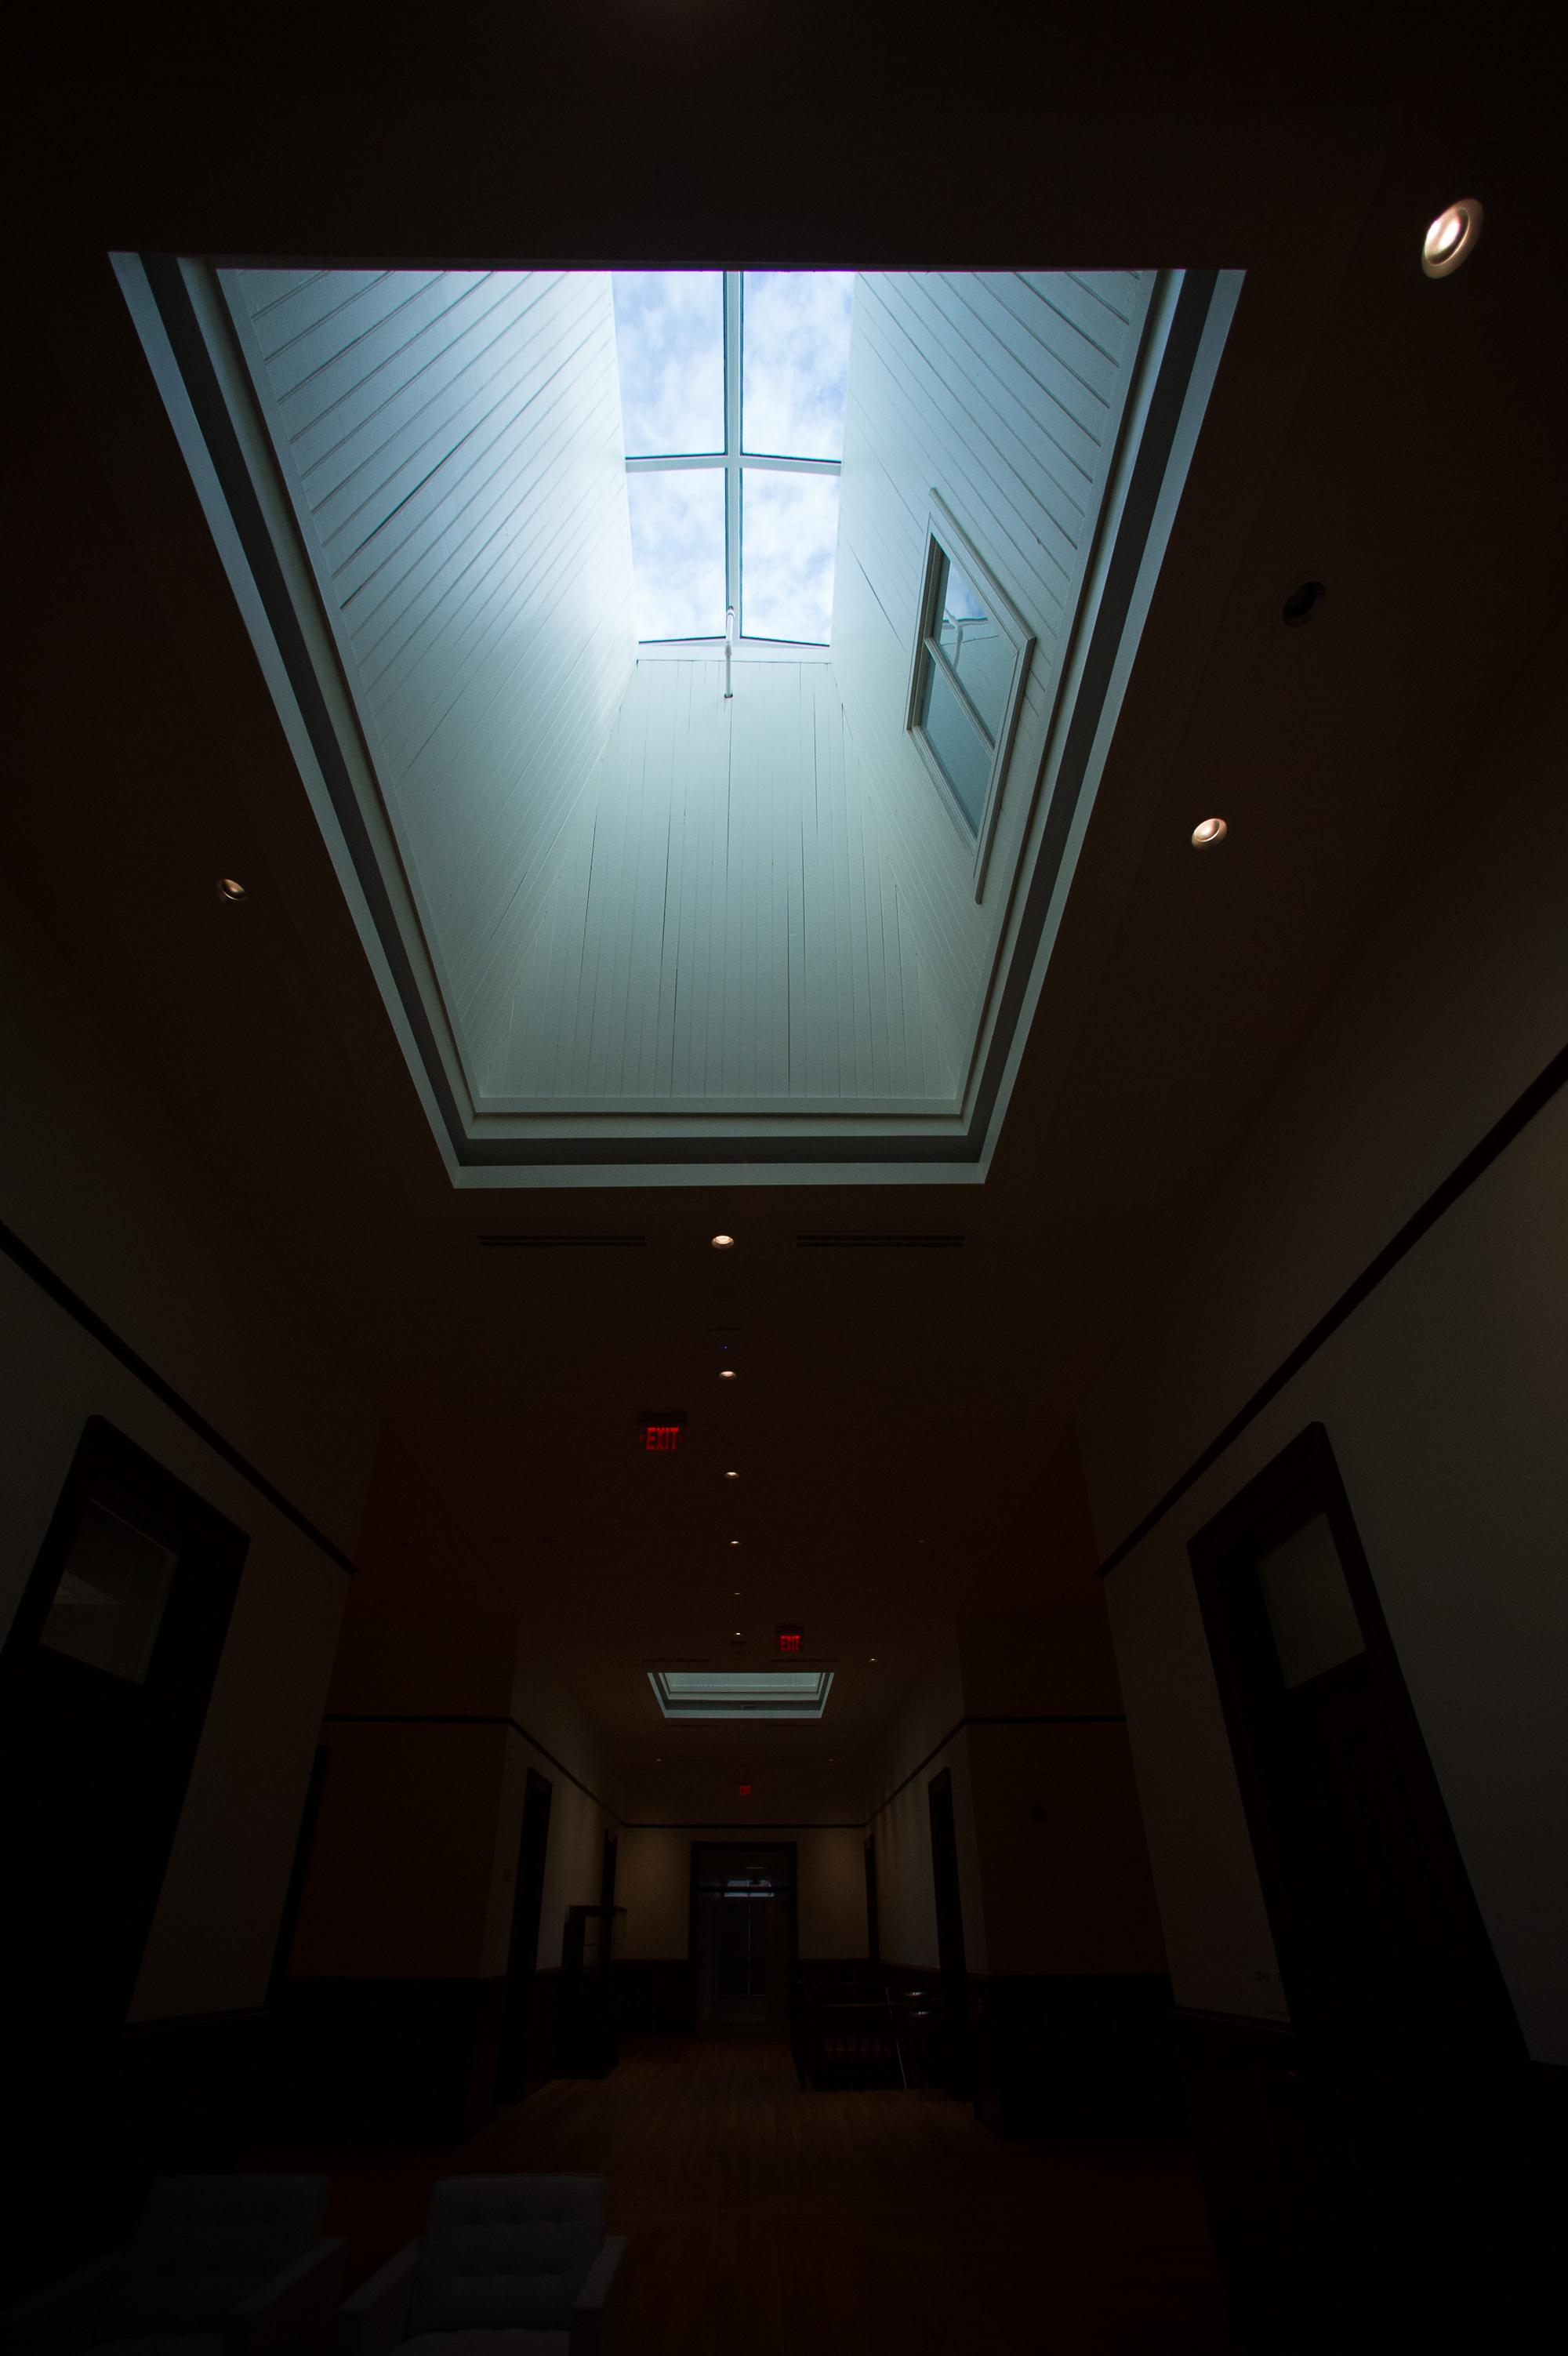 Natural light still enters the building from above.